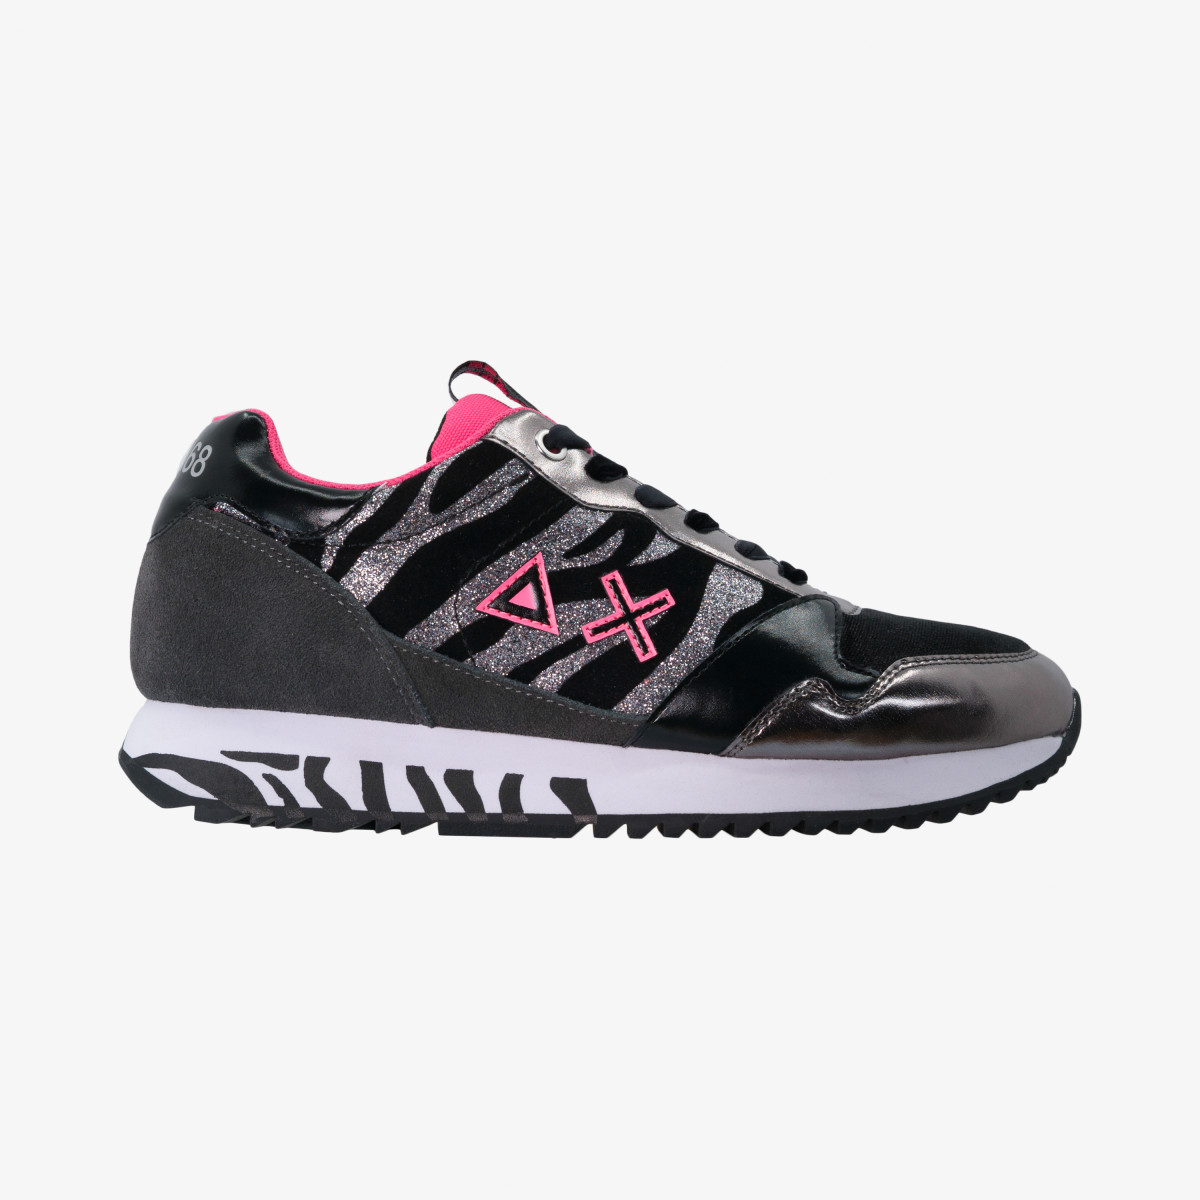 KELLY ZEBRA DARK GREY/FUXIA